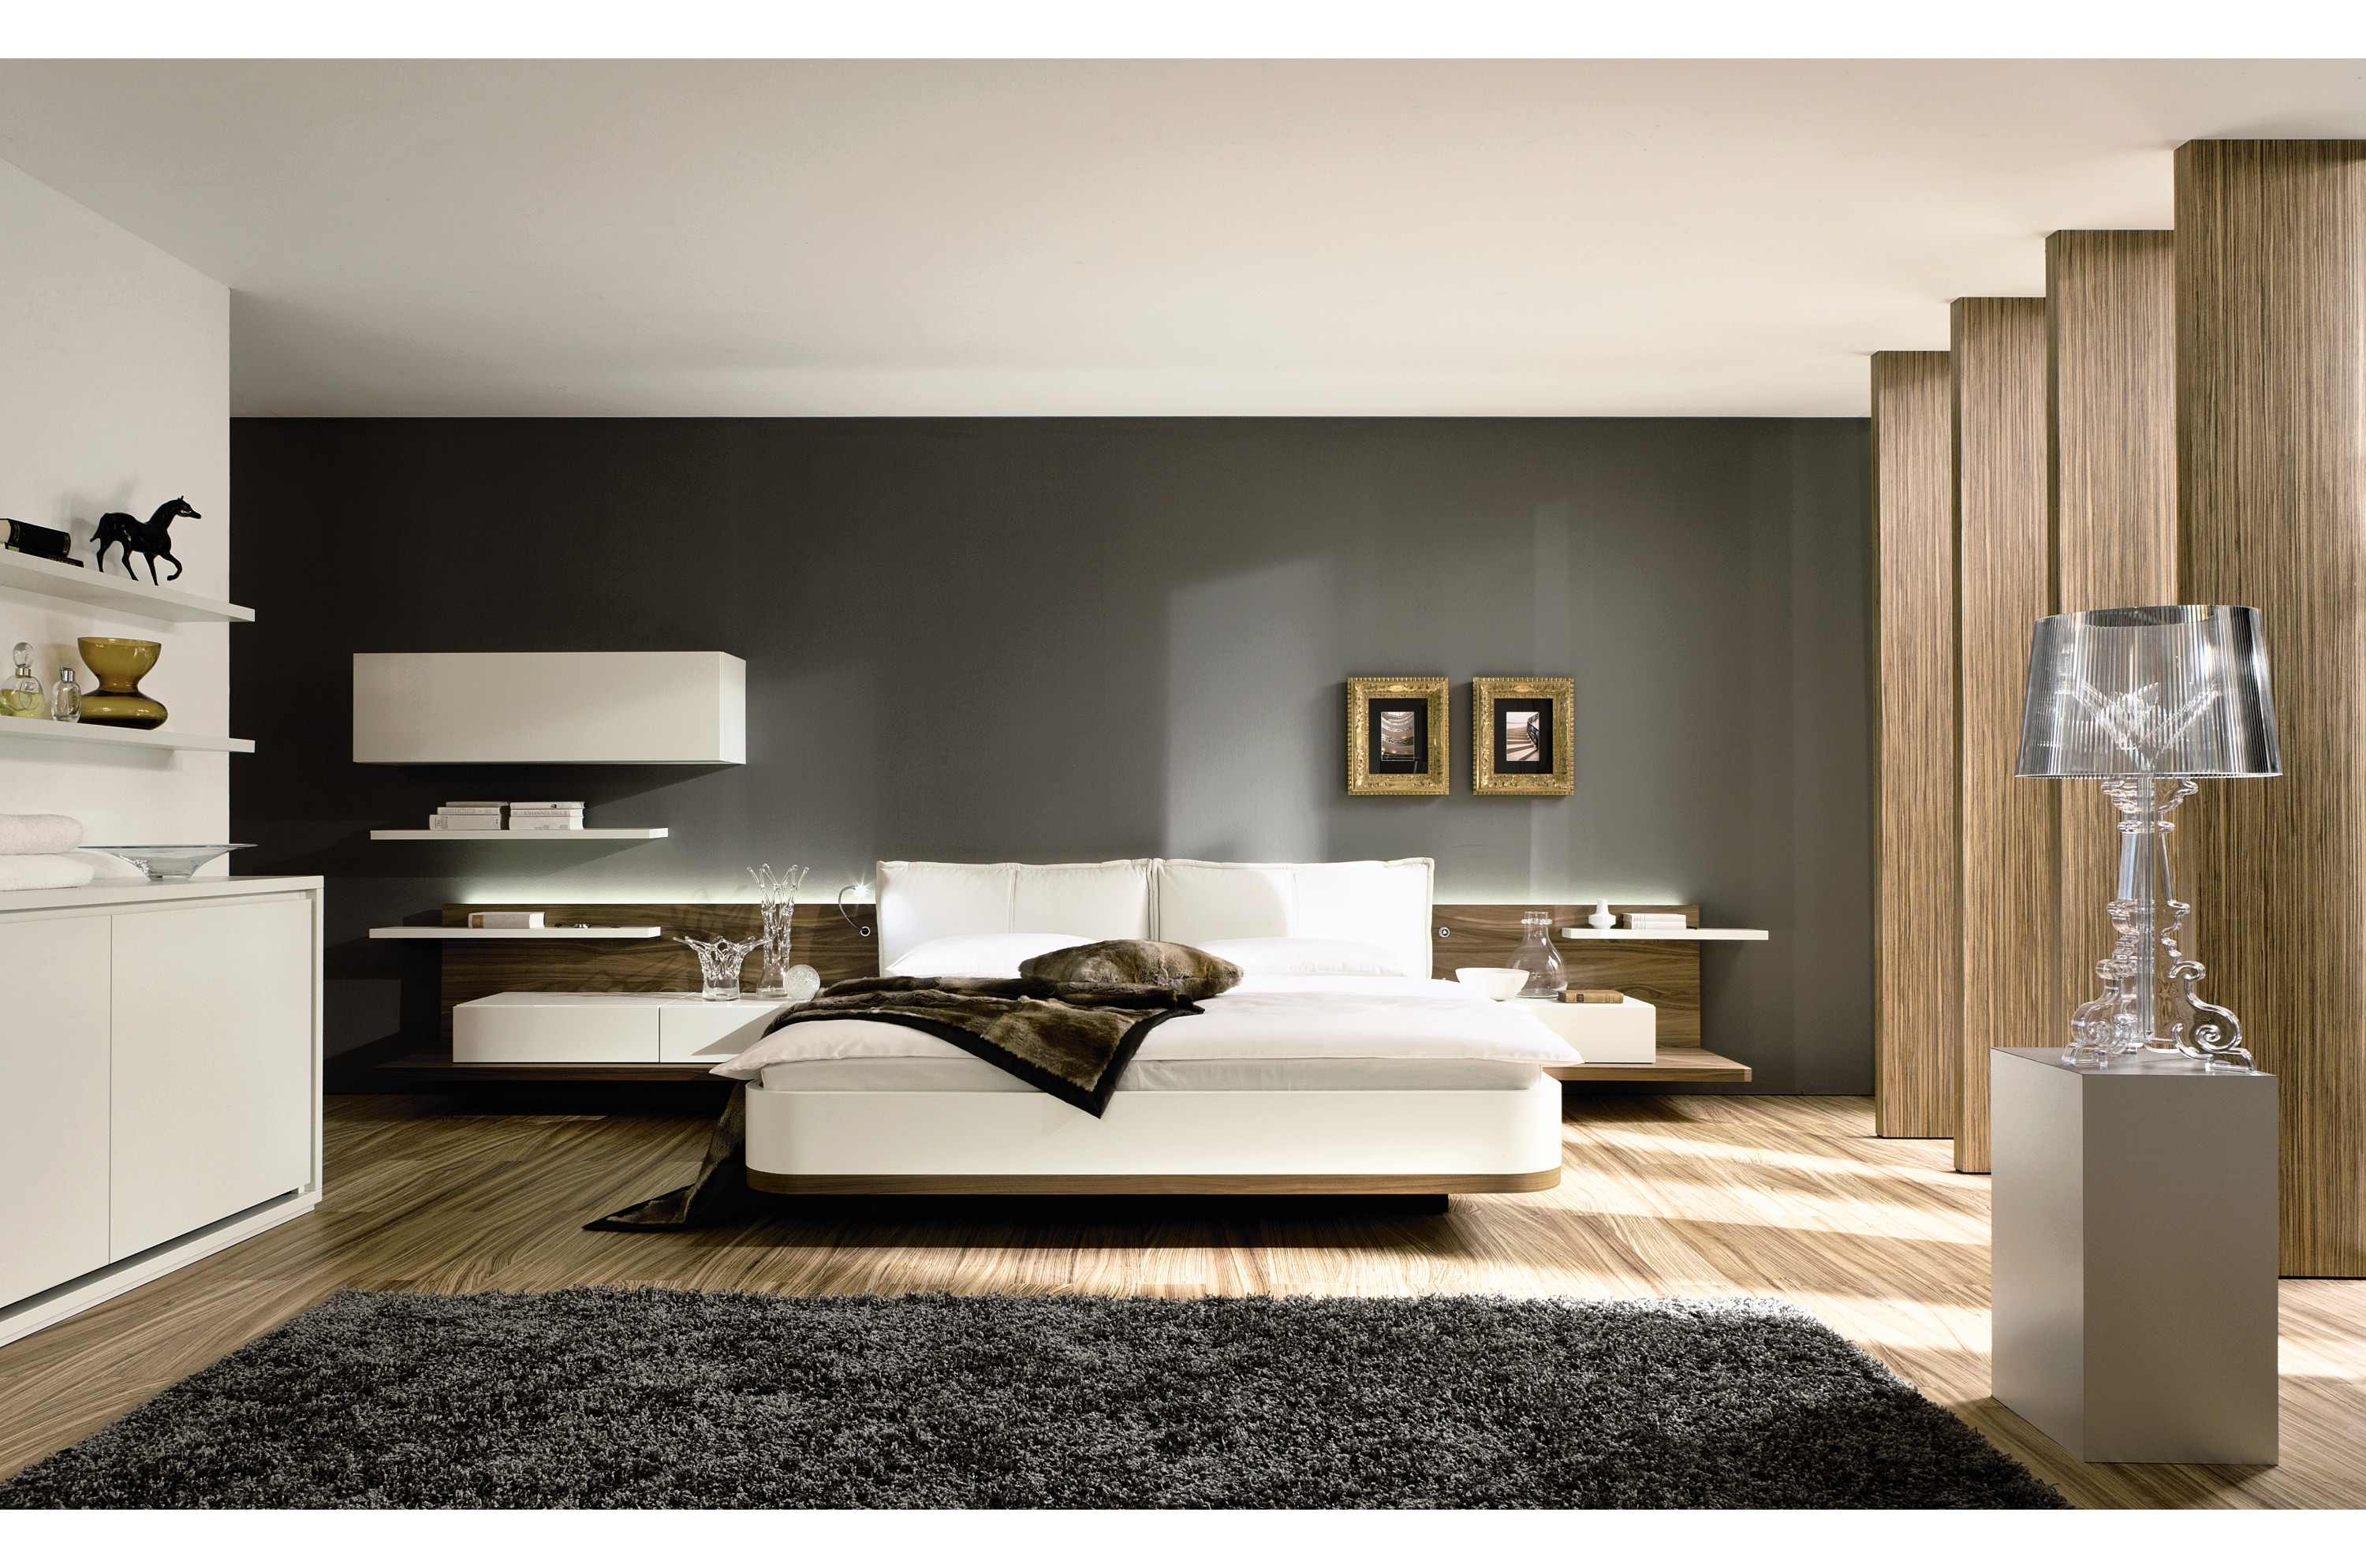 Modern Bedroom Innovation Bedroom Ideas Interior Design And Many By  Labs2.kentooz.com